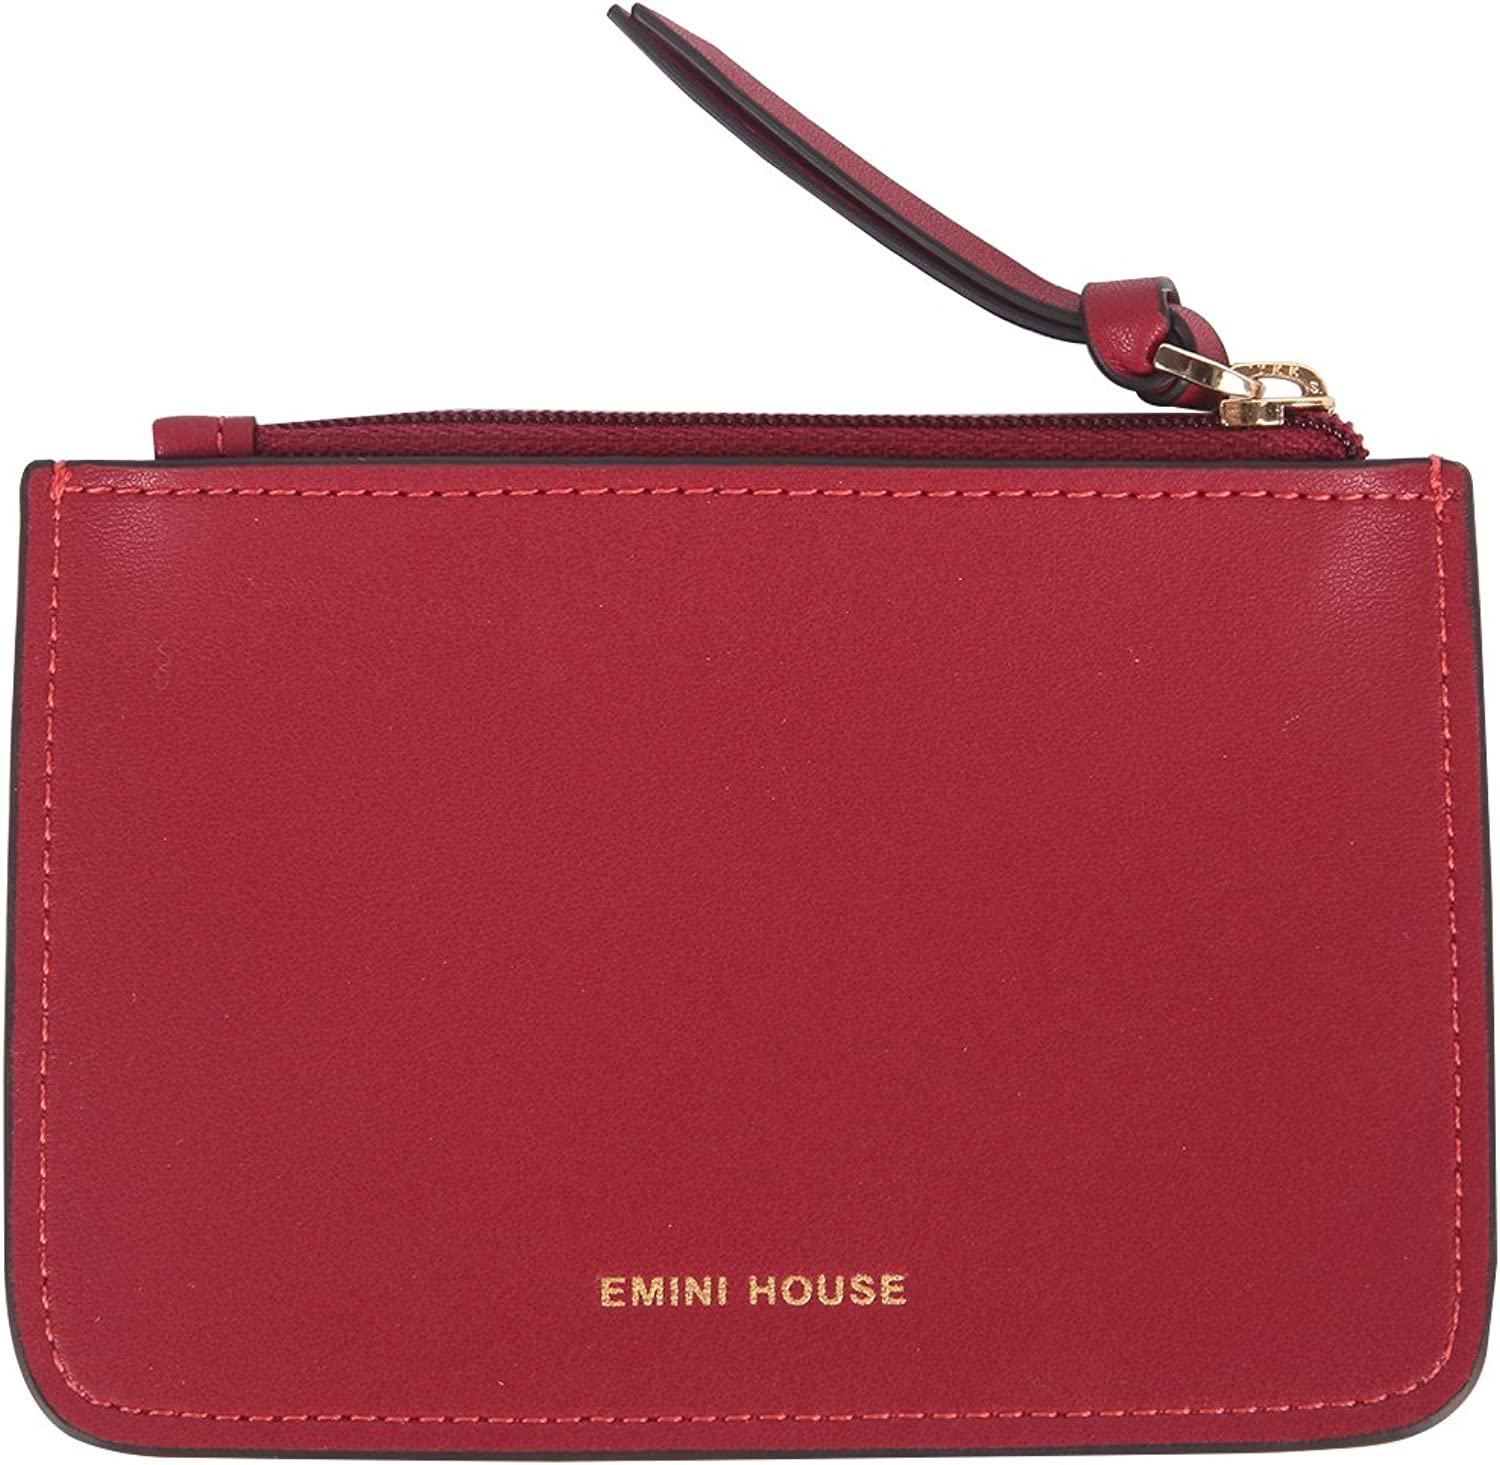 EMINI HOUSE Women Genuine Leather Coin Purse Mini Zip Pouches Change Holder Wallets Card Case